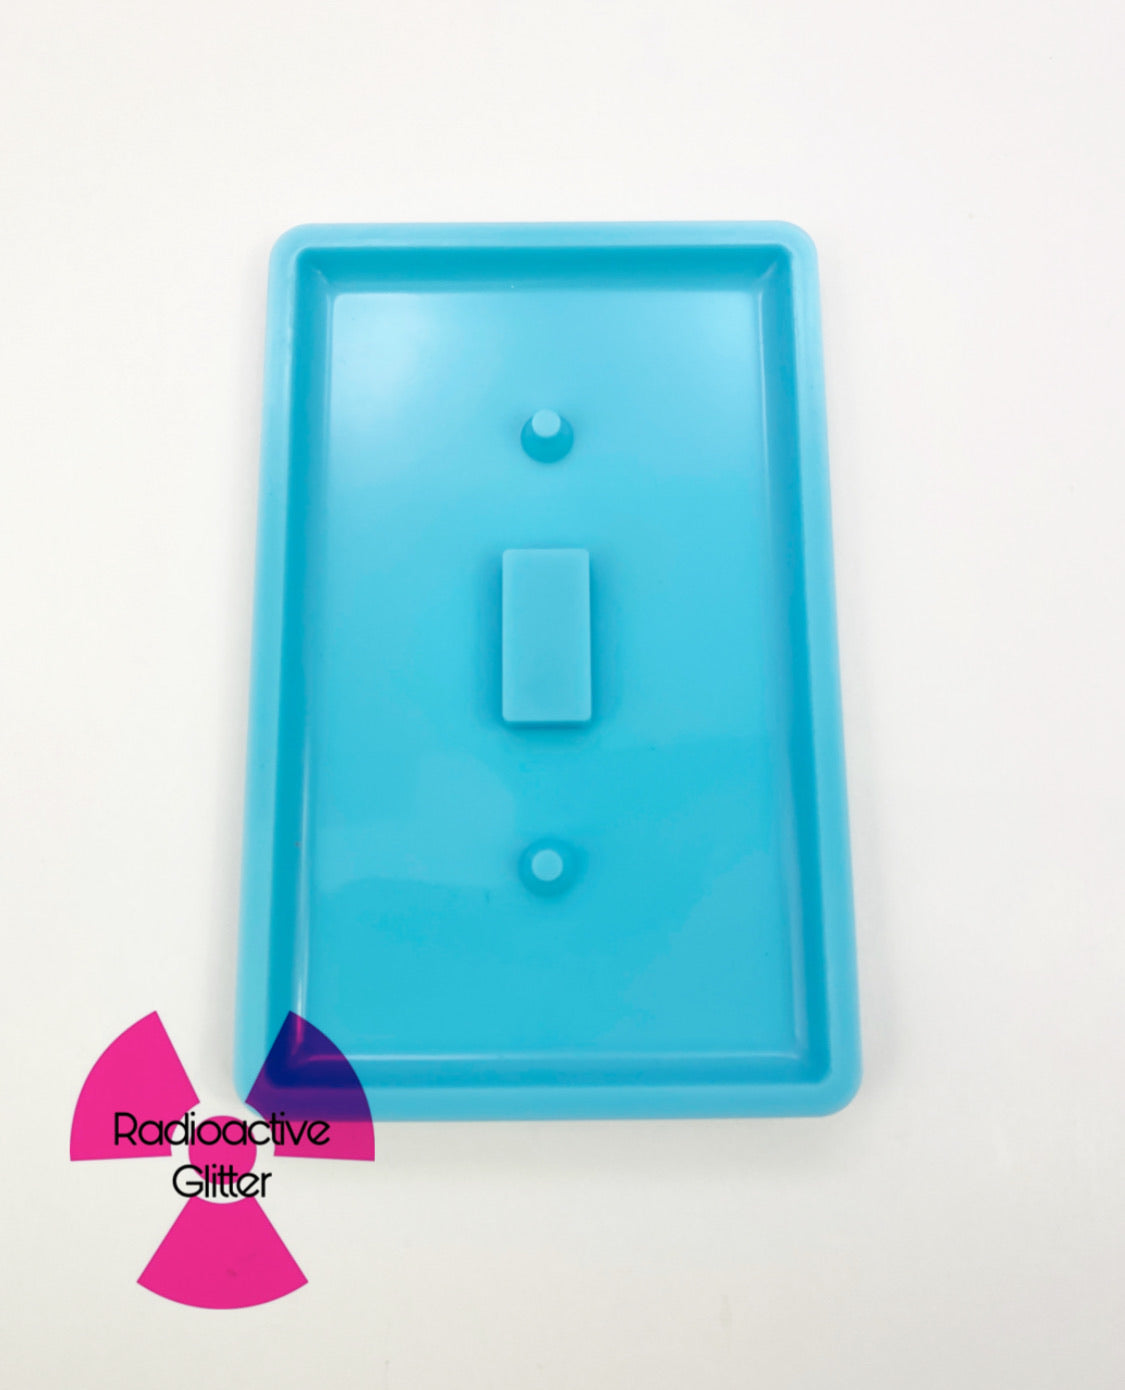 581 Light Switch Plate